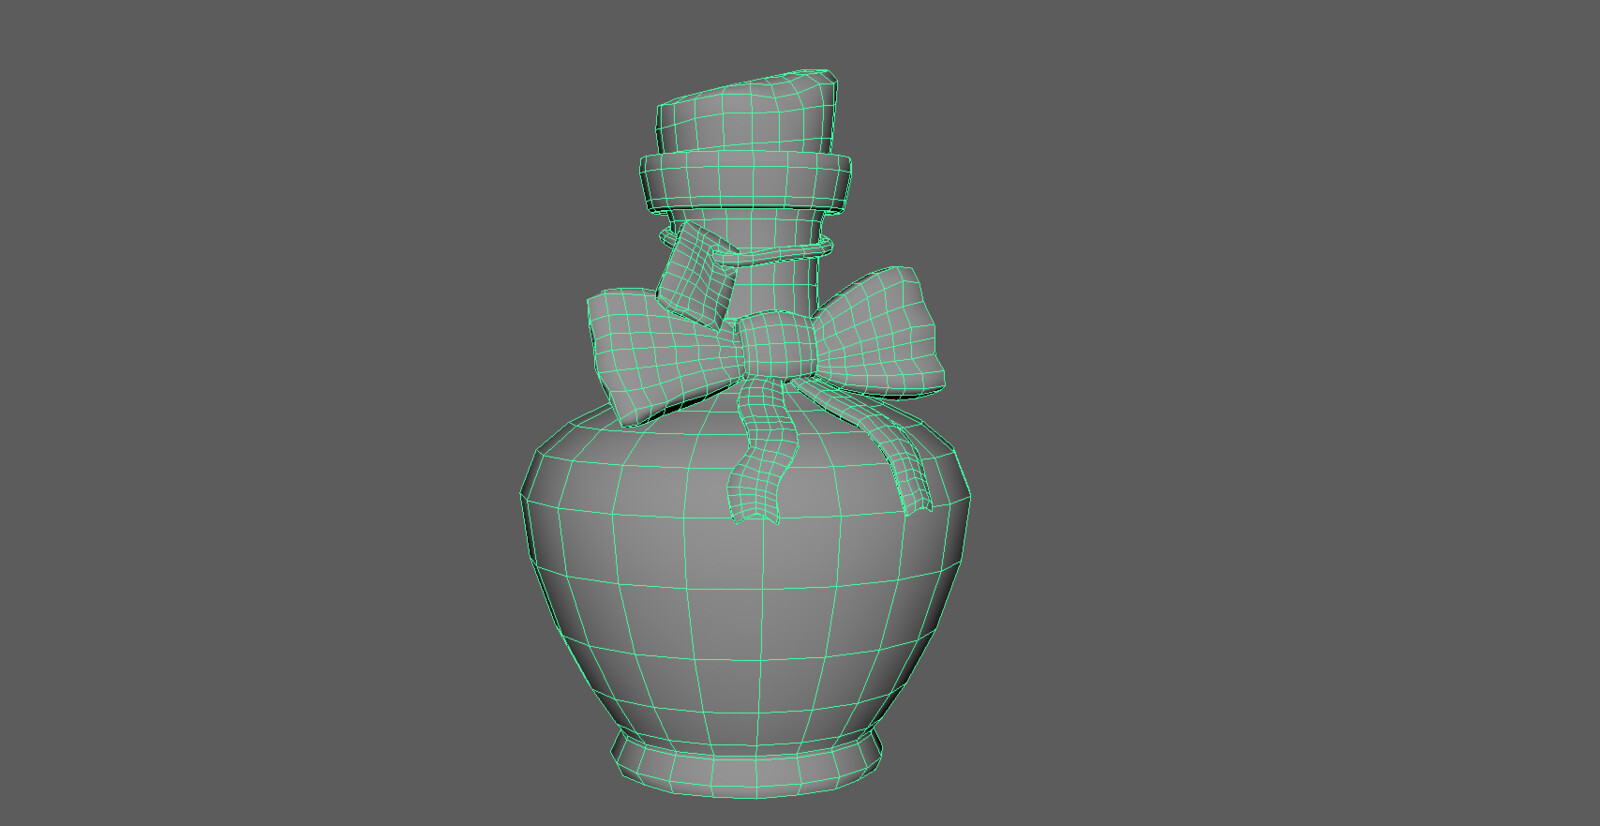 Optimized low poly mesh